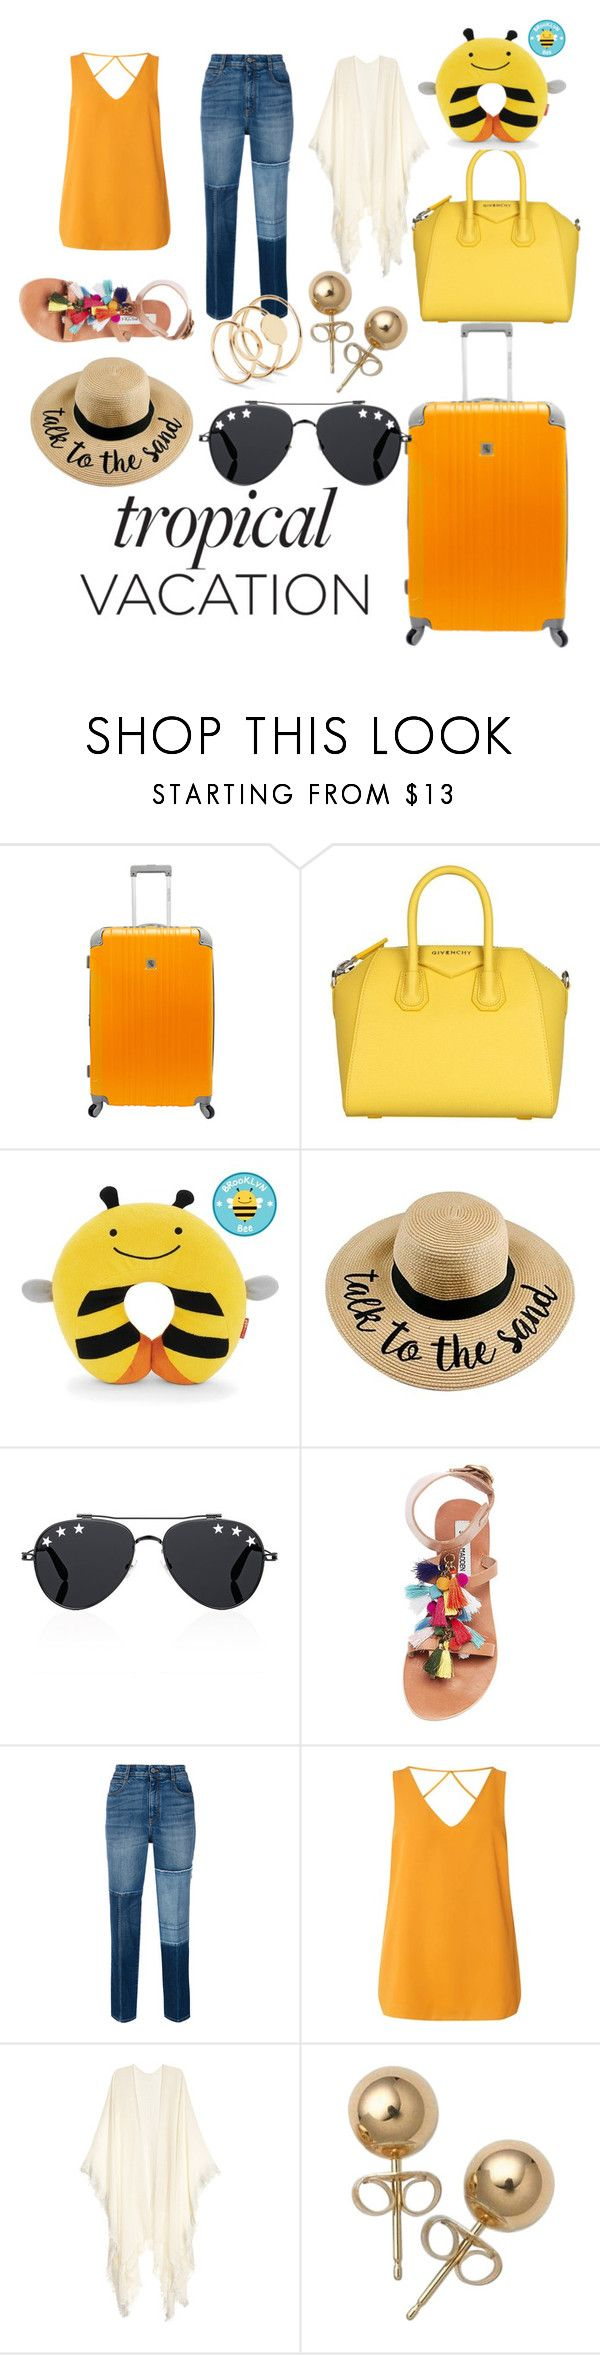 """""""#tropicalvacation outfit 💛💛🐝"""" by yatsina ❤ liked on Polyvore featuring Beverly Hills Country Club, Givenchy, Skip Hop, Steve Madden, STELLA McCARTNEY, Dorothy Perkins and Bling Jewelry"""